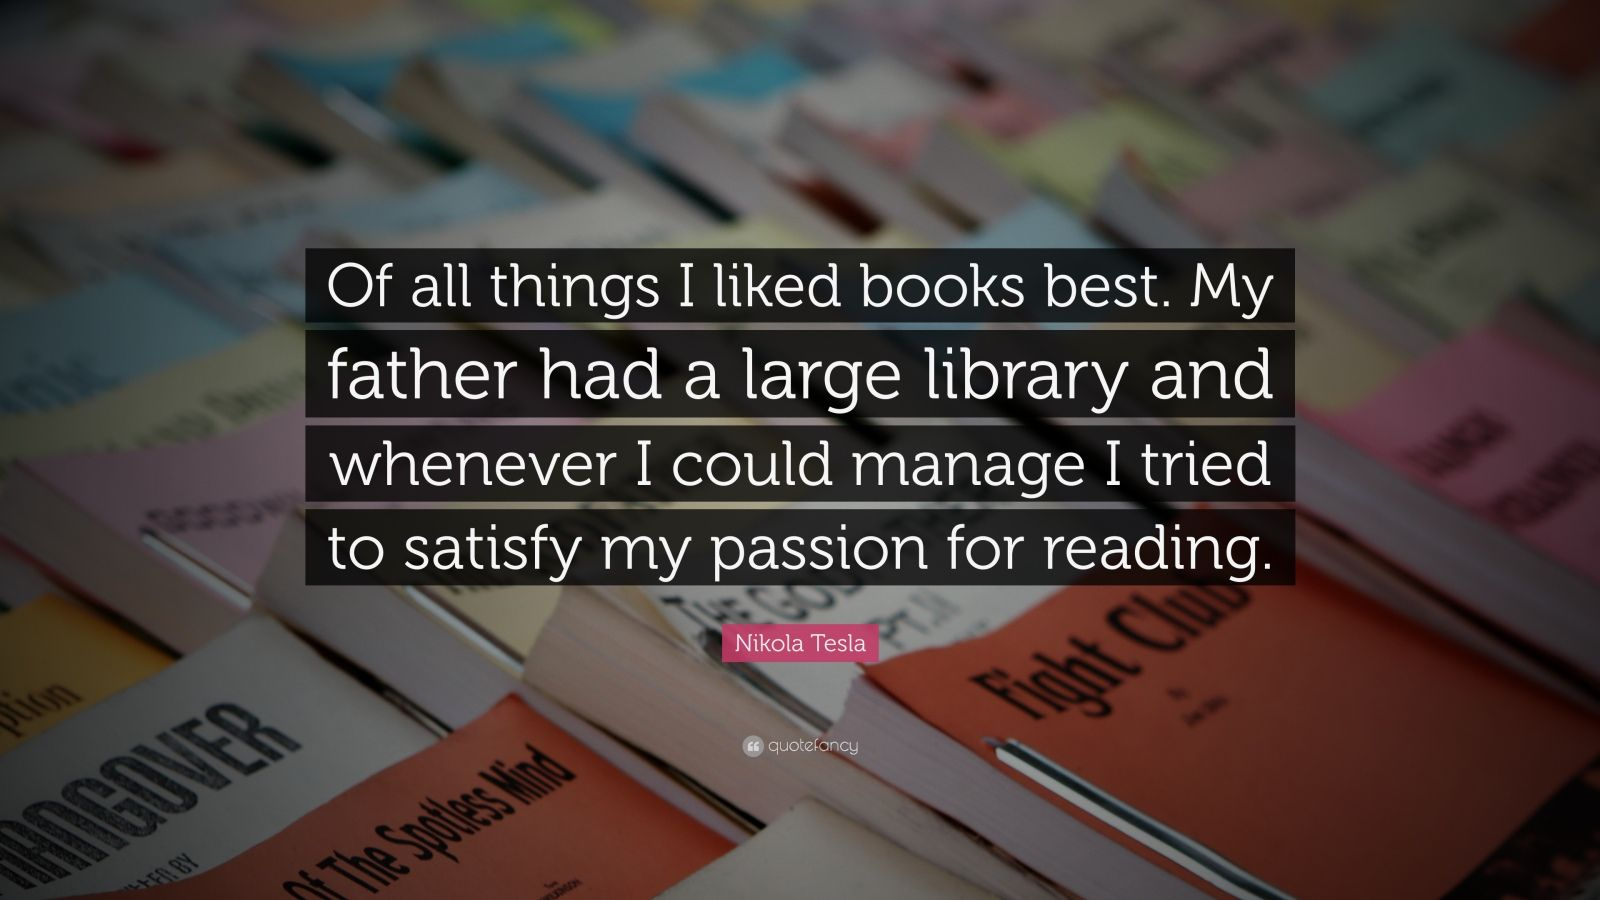 """Nikola Tesla Quote: """"Of all things I liked books best. My father had a large library and whenever I could manage I tried to satisfy my passion for reading."""""""